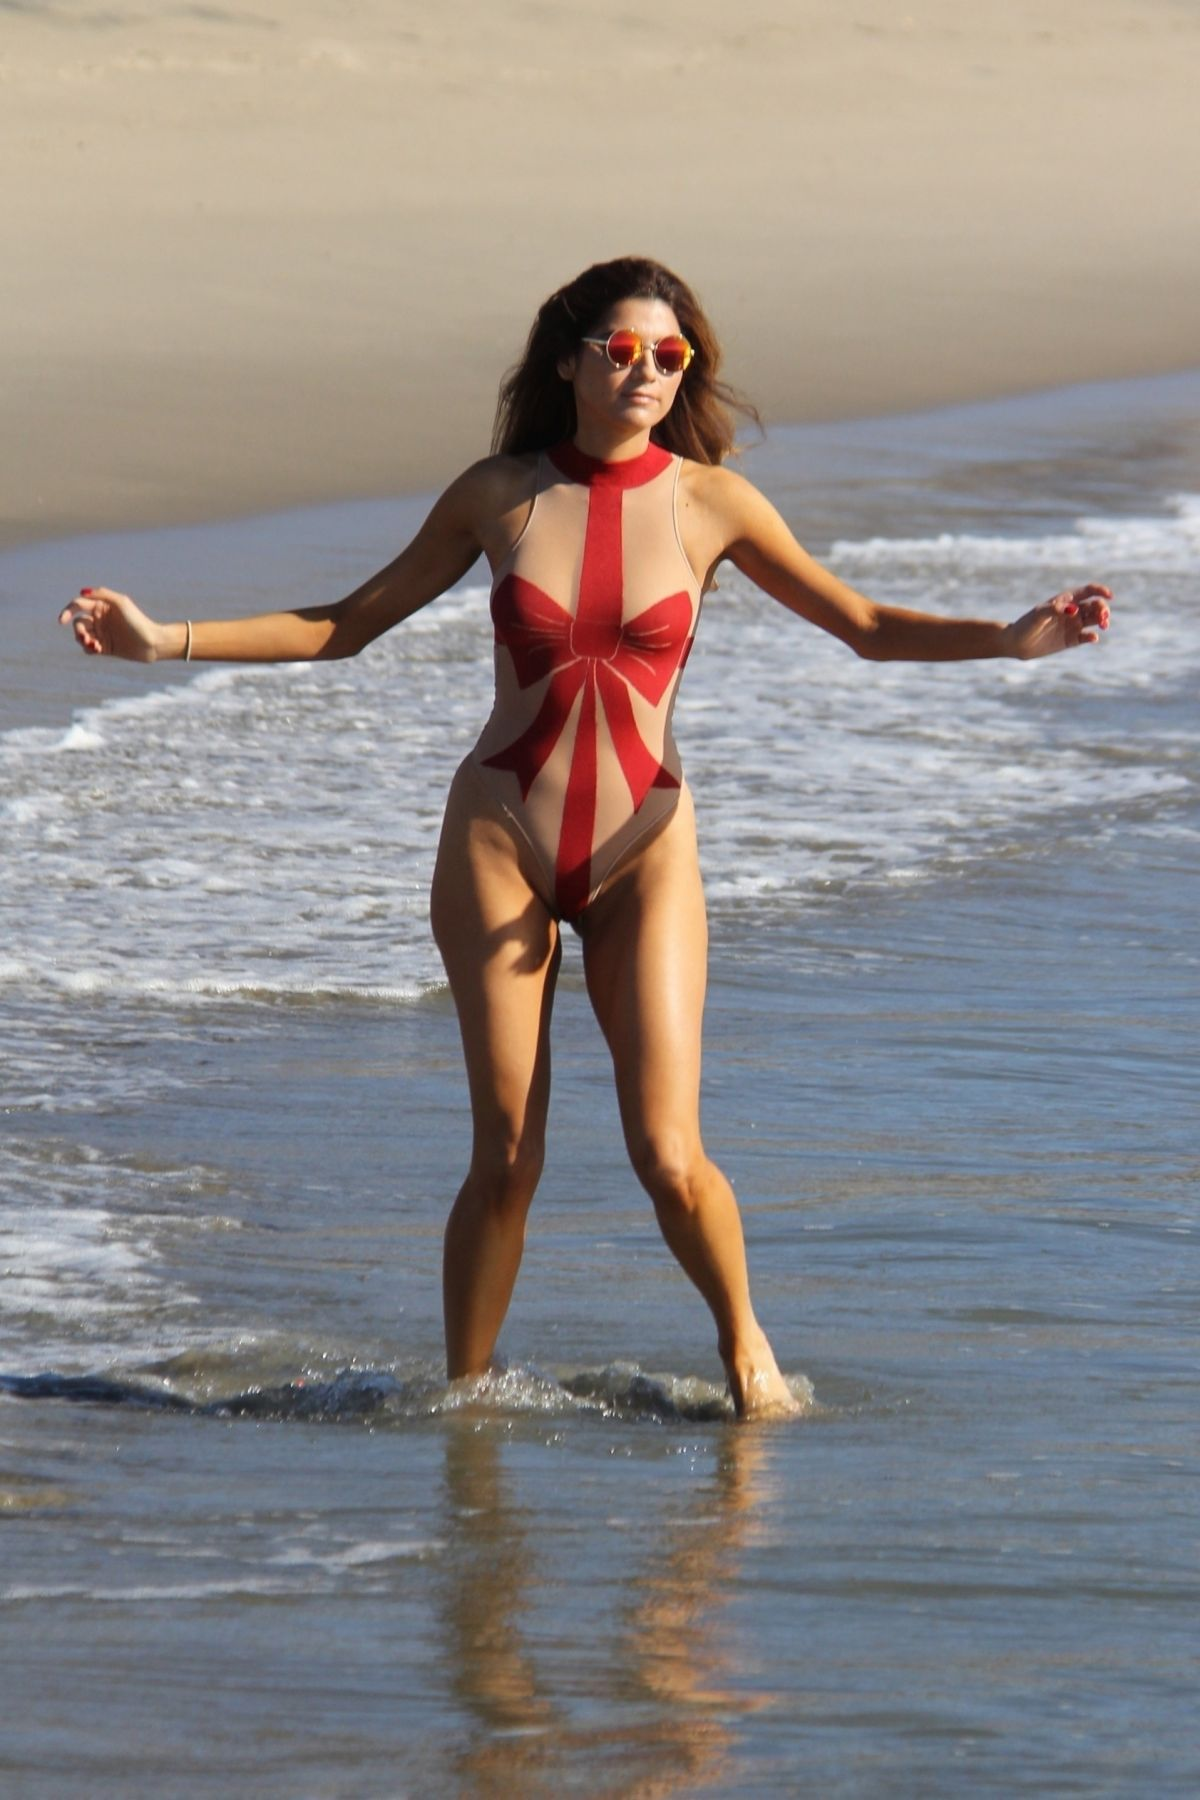 fb6471c4d2 Blanca blanco gets into the holiday spirit at the beach in malibu wearing a christmas  bow